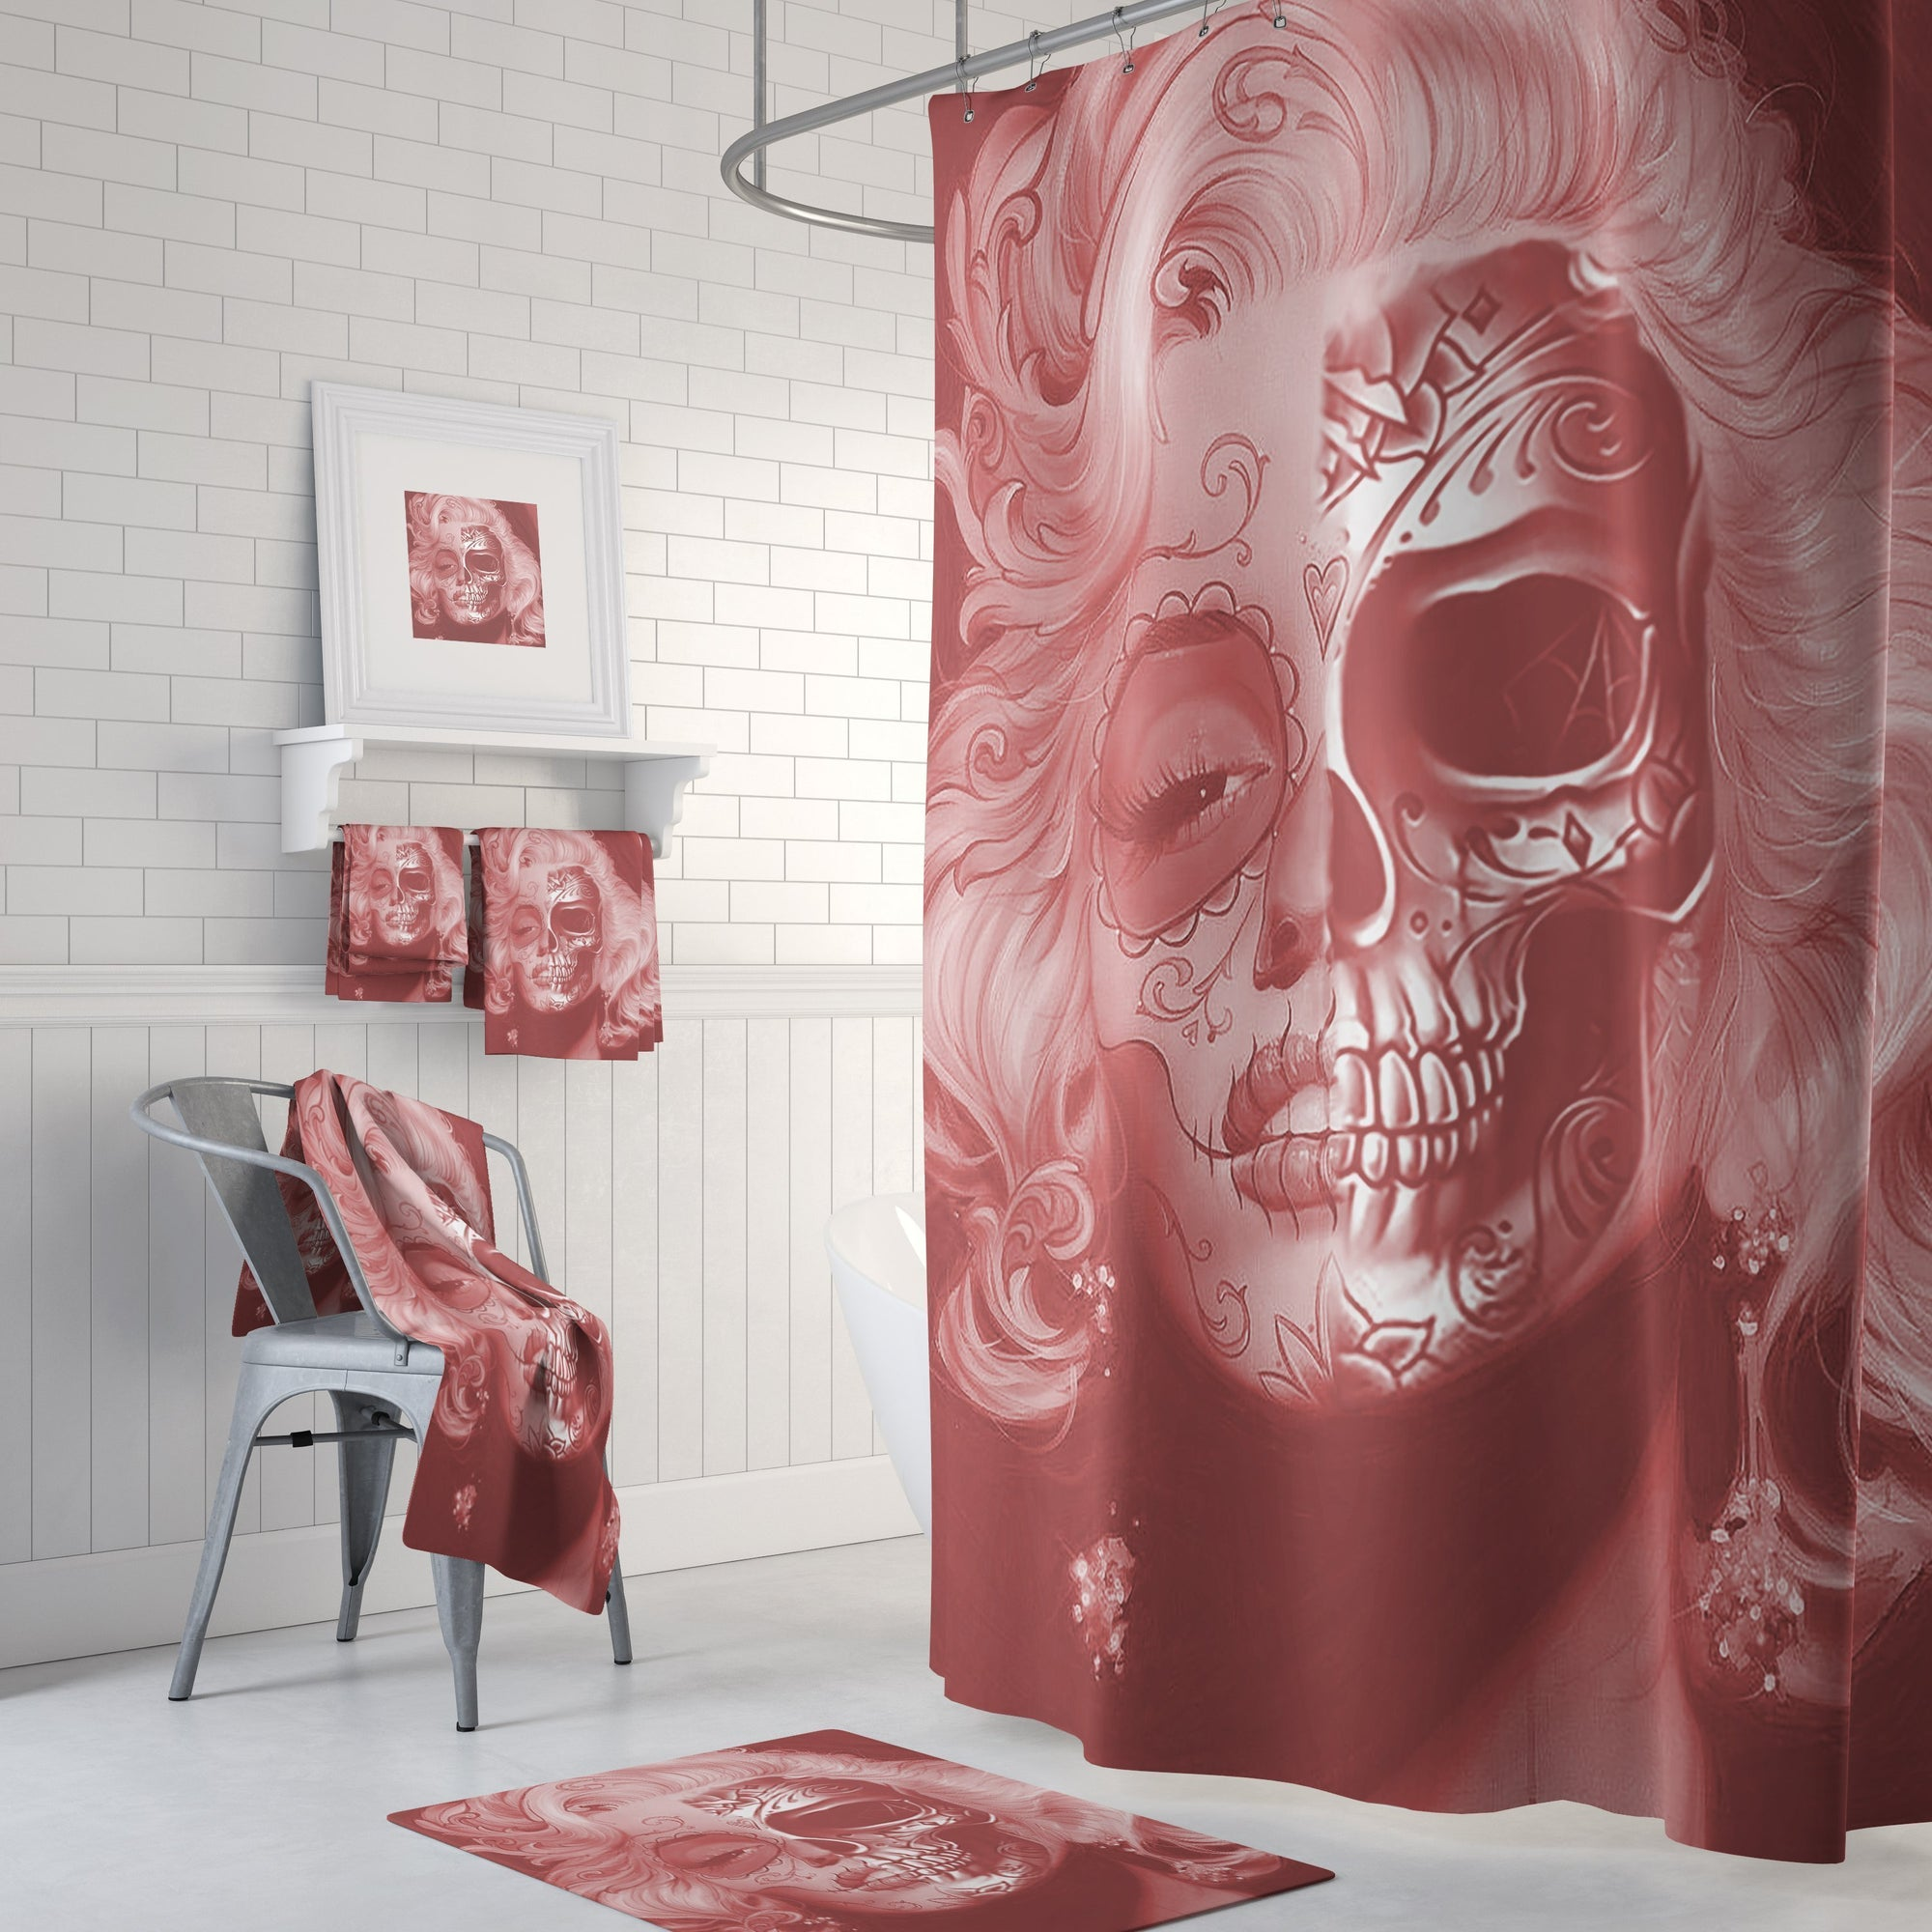 Beautiful skull face Set - Amaze Style™-Home Decor